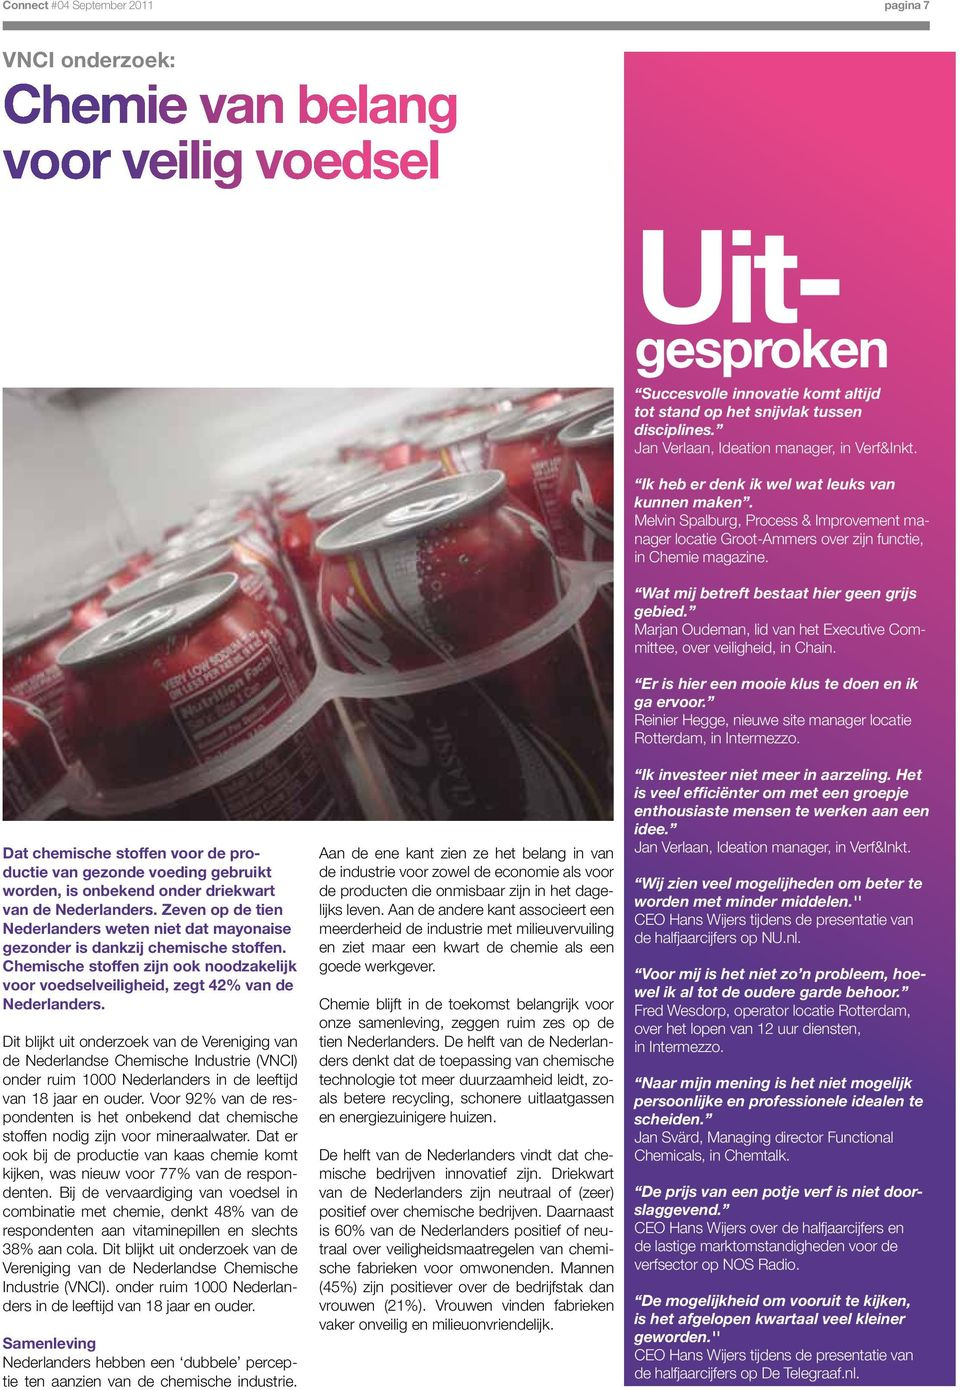 Melvin Spalburg, Process & Improvement manager locatie Groot-Ammers over zijn functie, in Chemie magazine. Wat mij betreft bestaat hier geen grijs gebied.